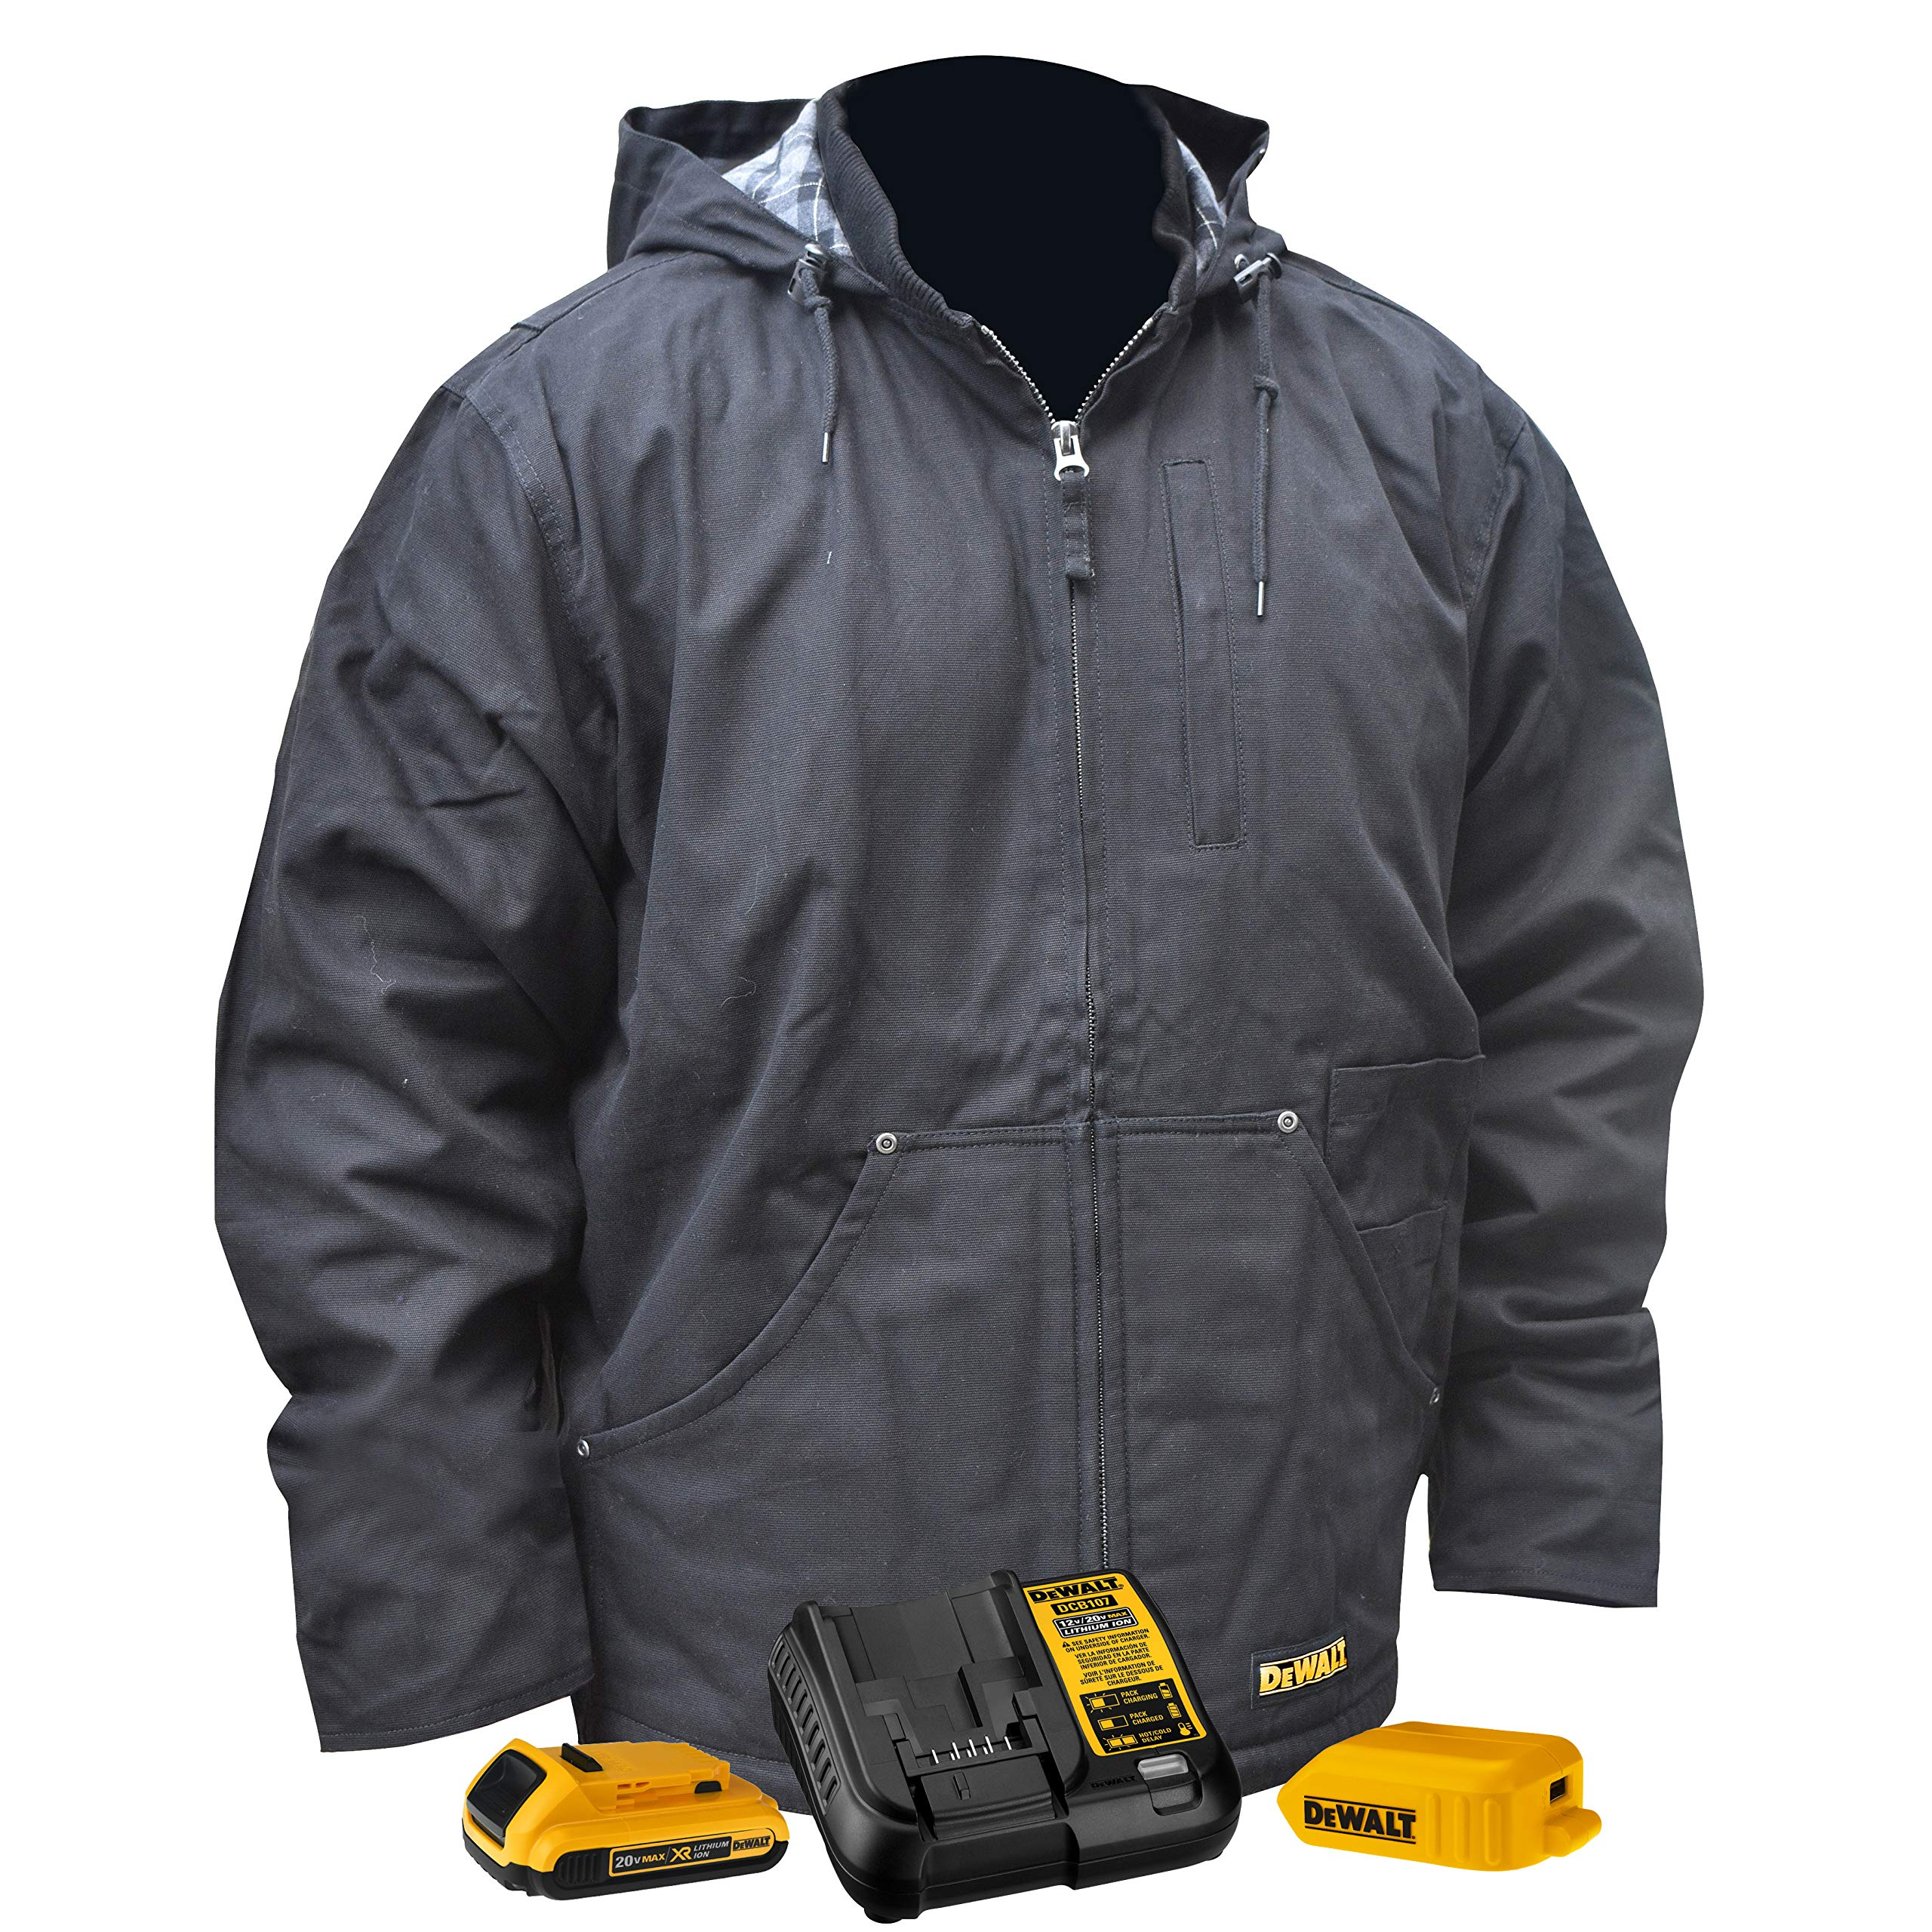 DEWALT DCHJ076A Heated Heavy Duty Work Coat Kit with 2.0Ah Battery and Charger by DEWALT